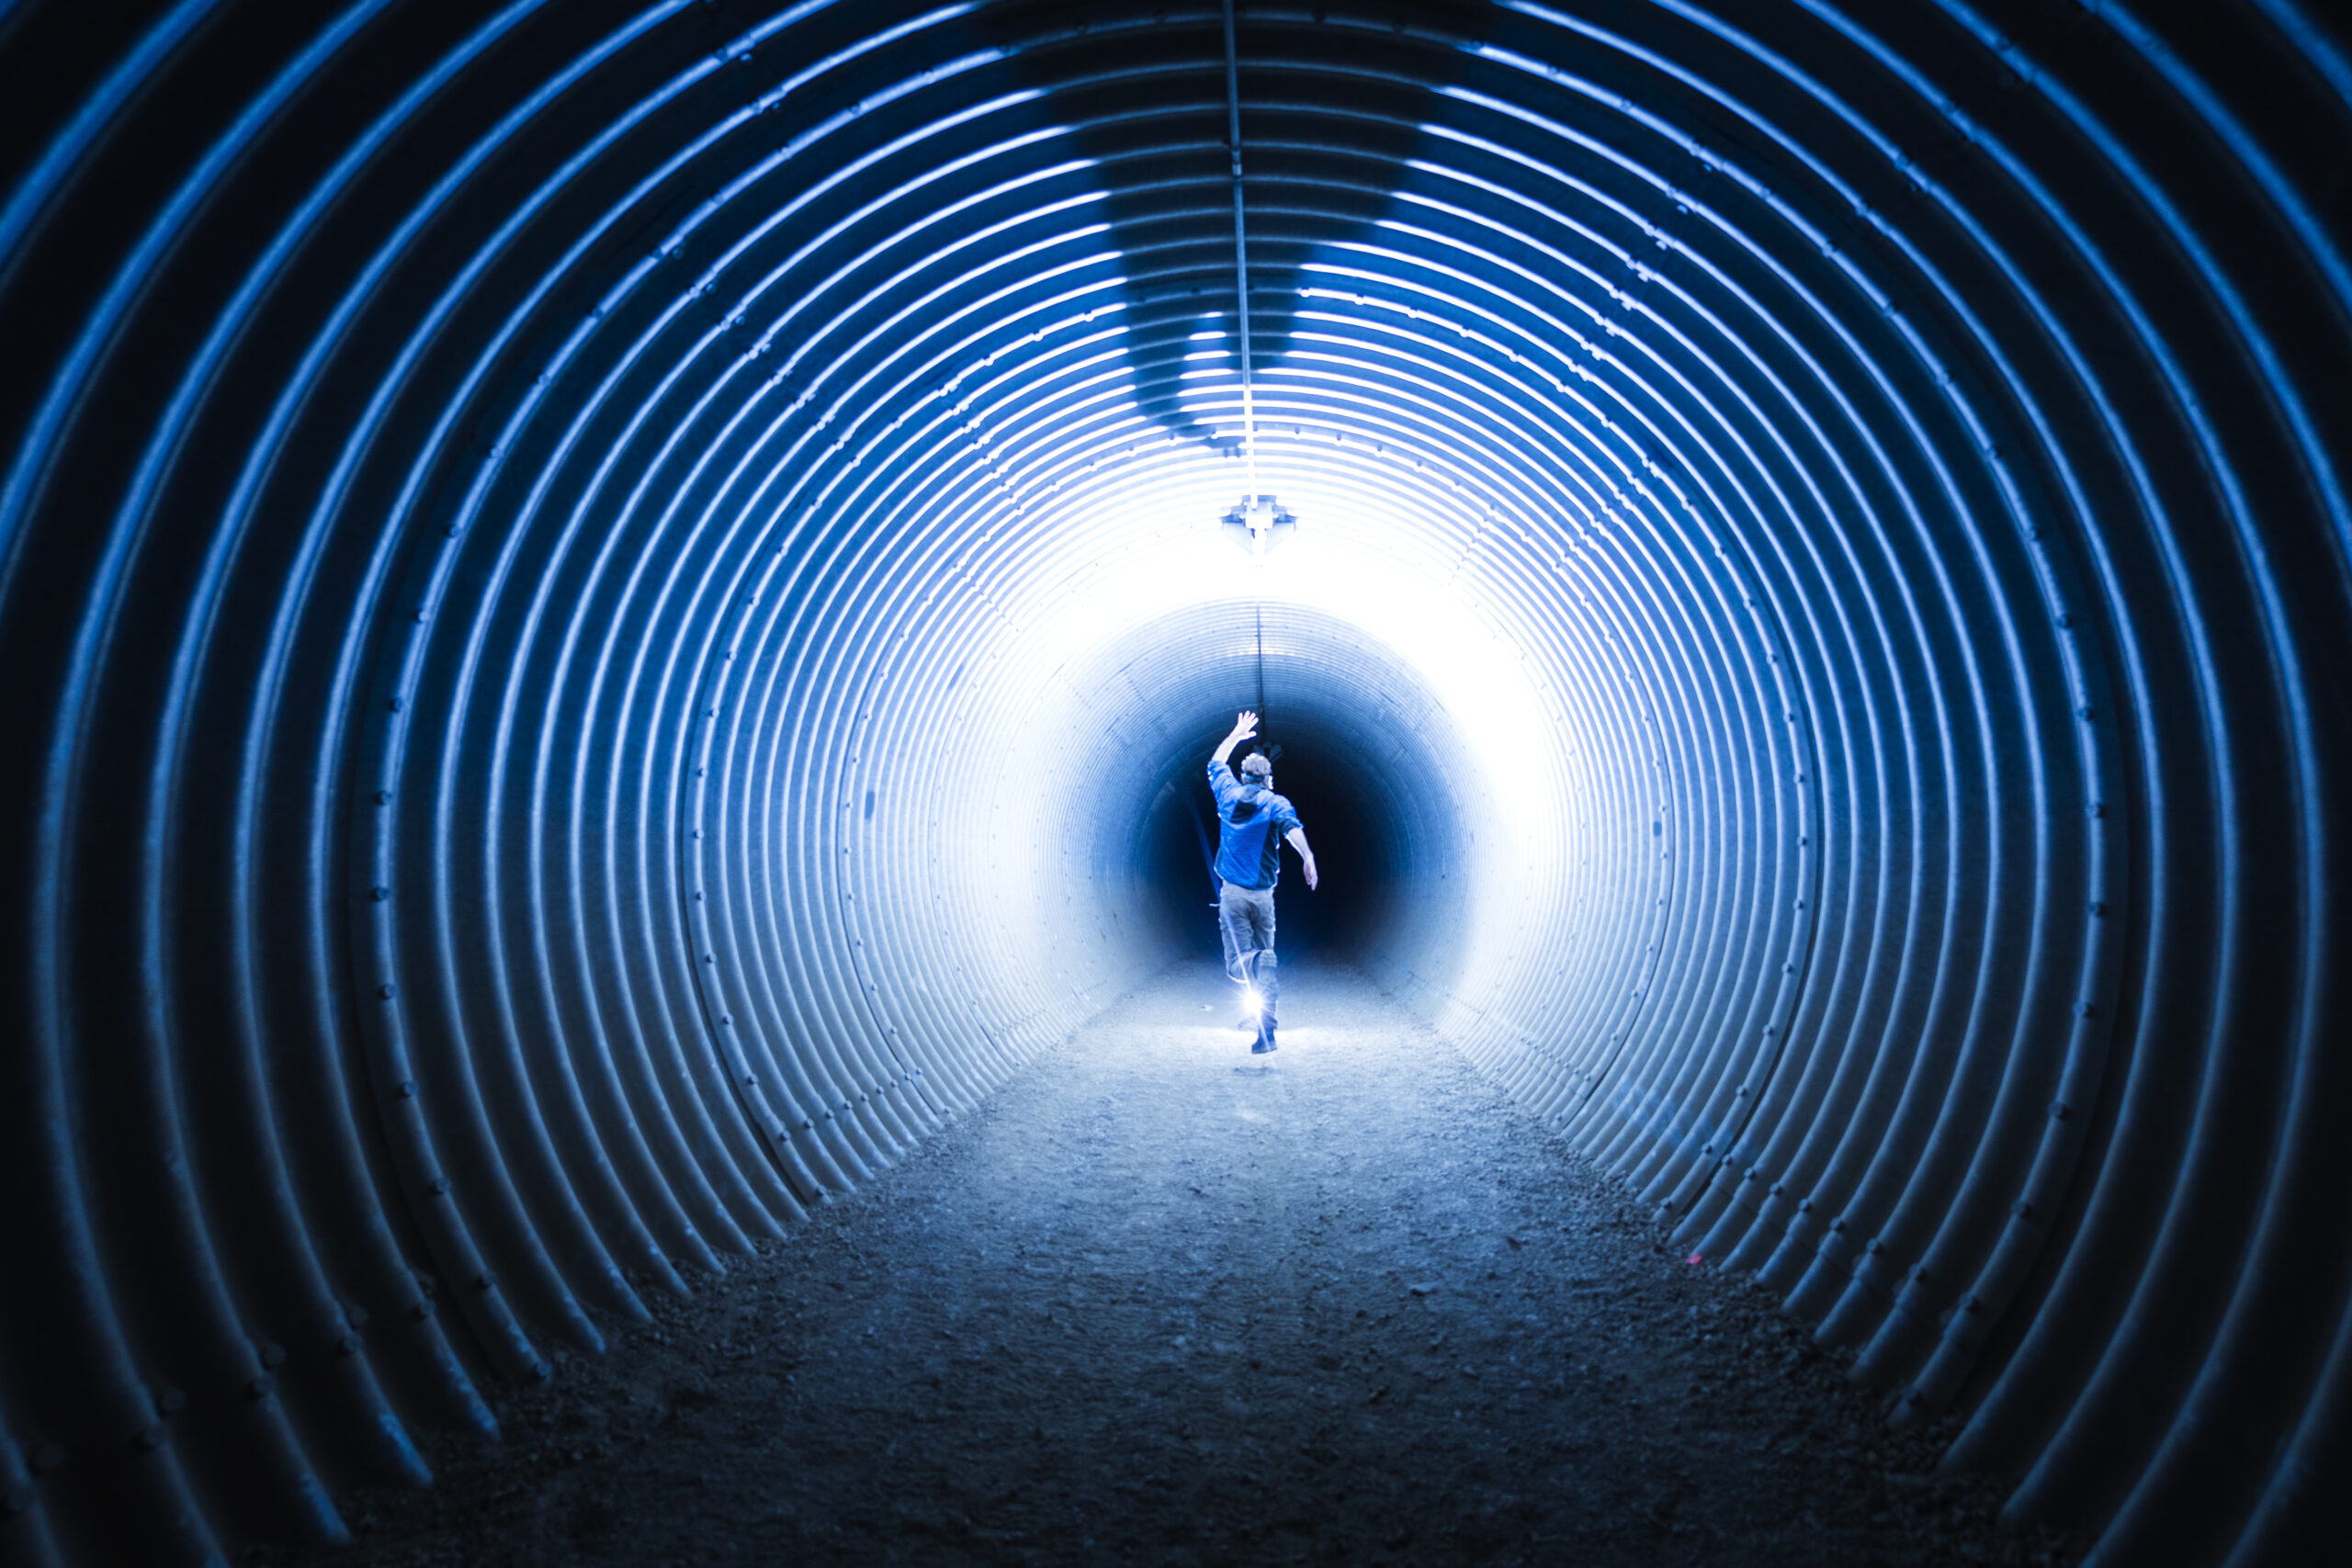 A person running inside a highway underpass at night in Winfield, Lake Country, British Columbia, Canada